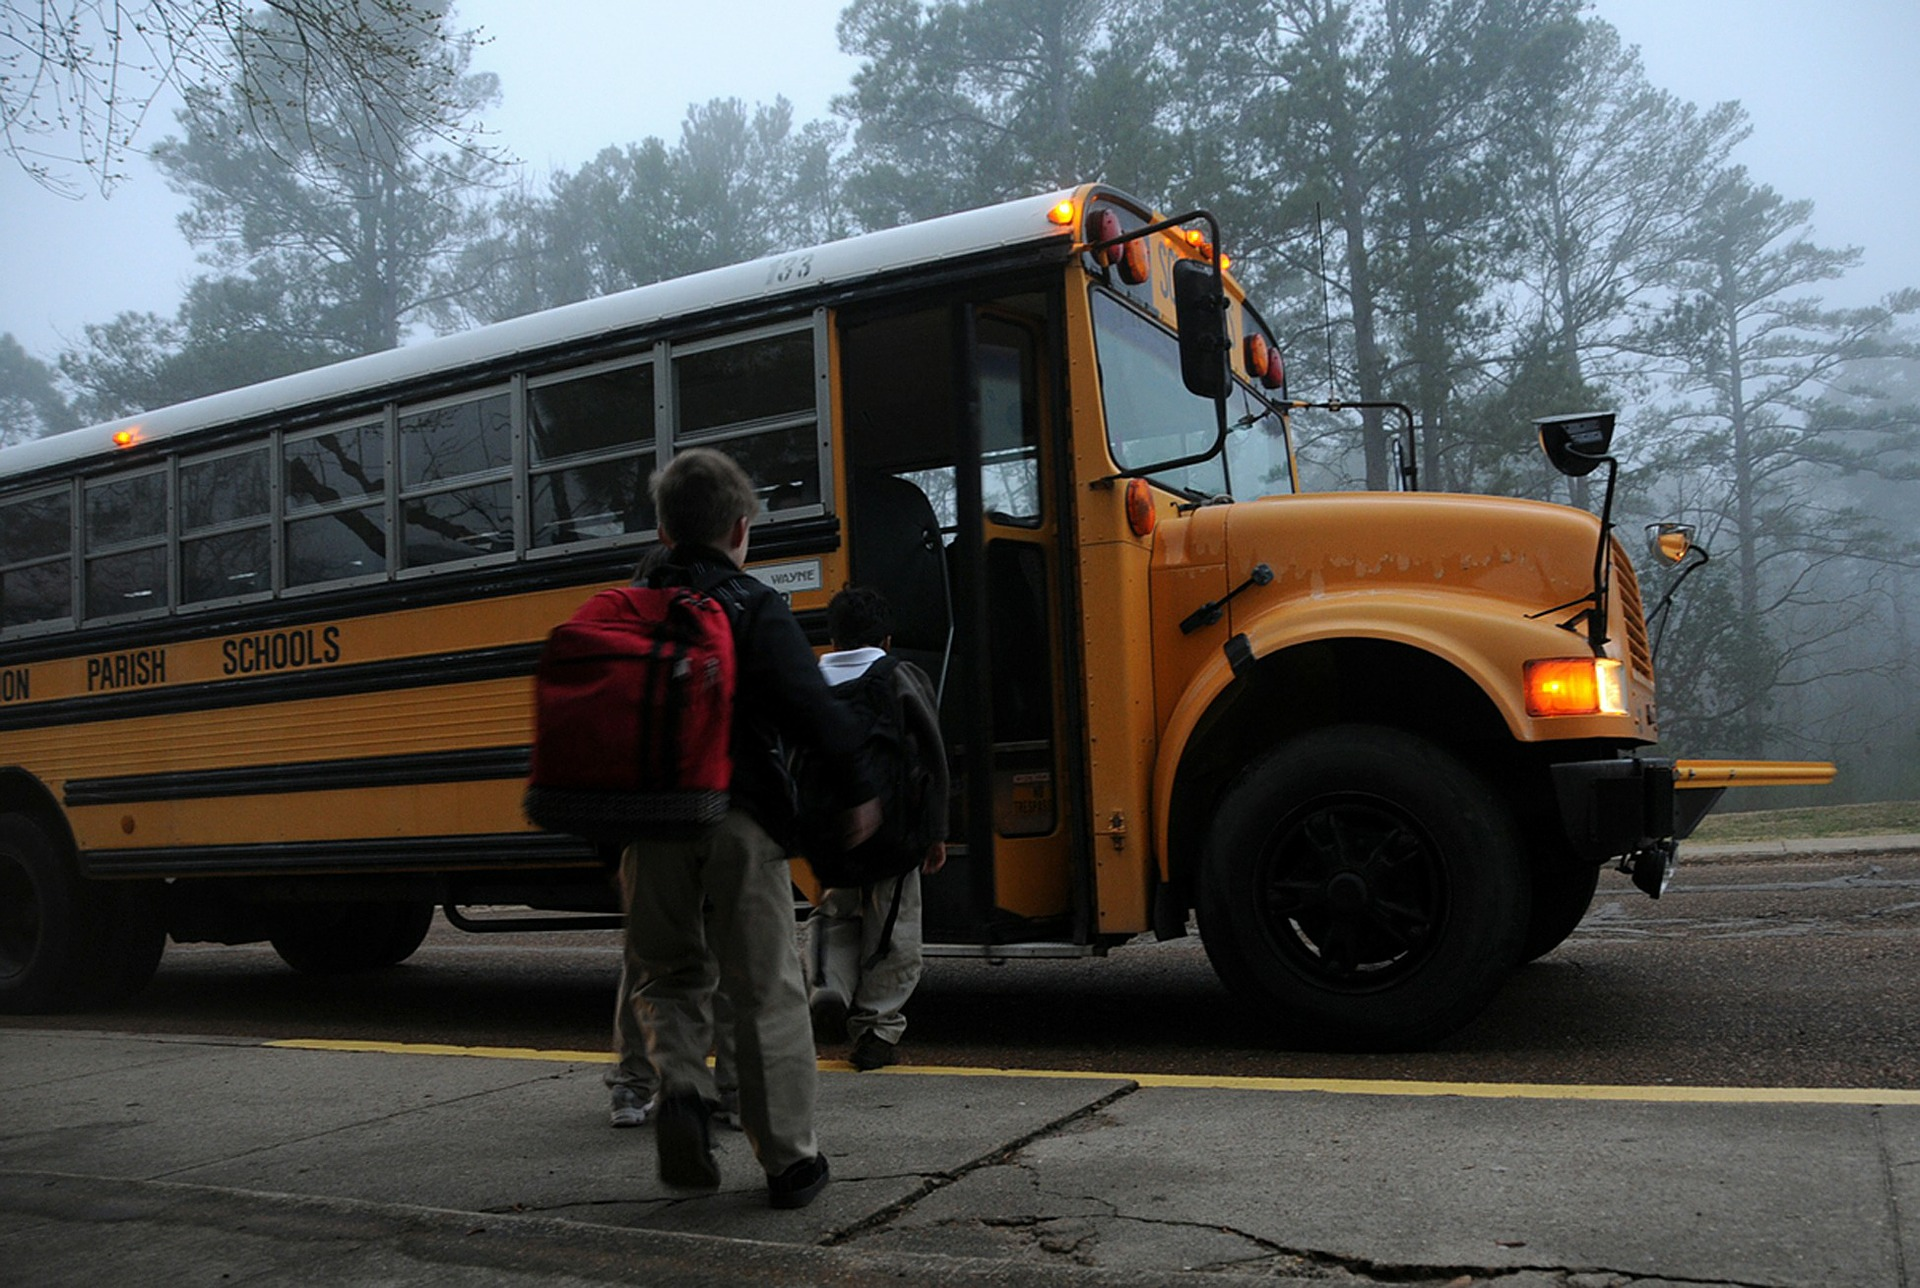 Illinois Rules Of The Road: Stopping For School Buses